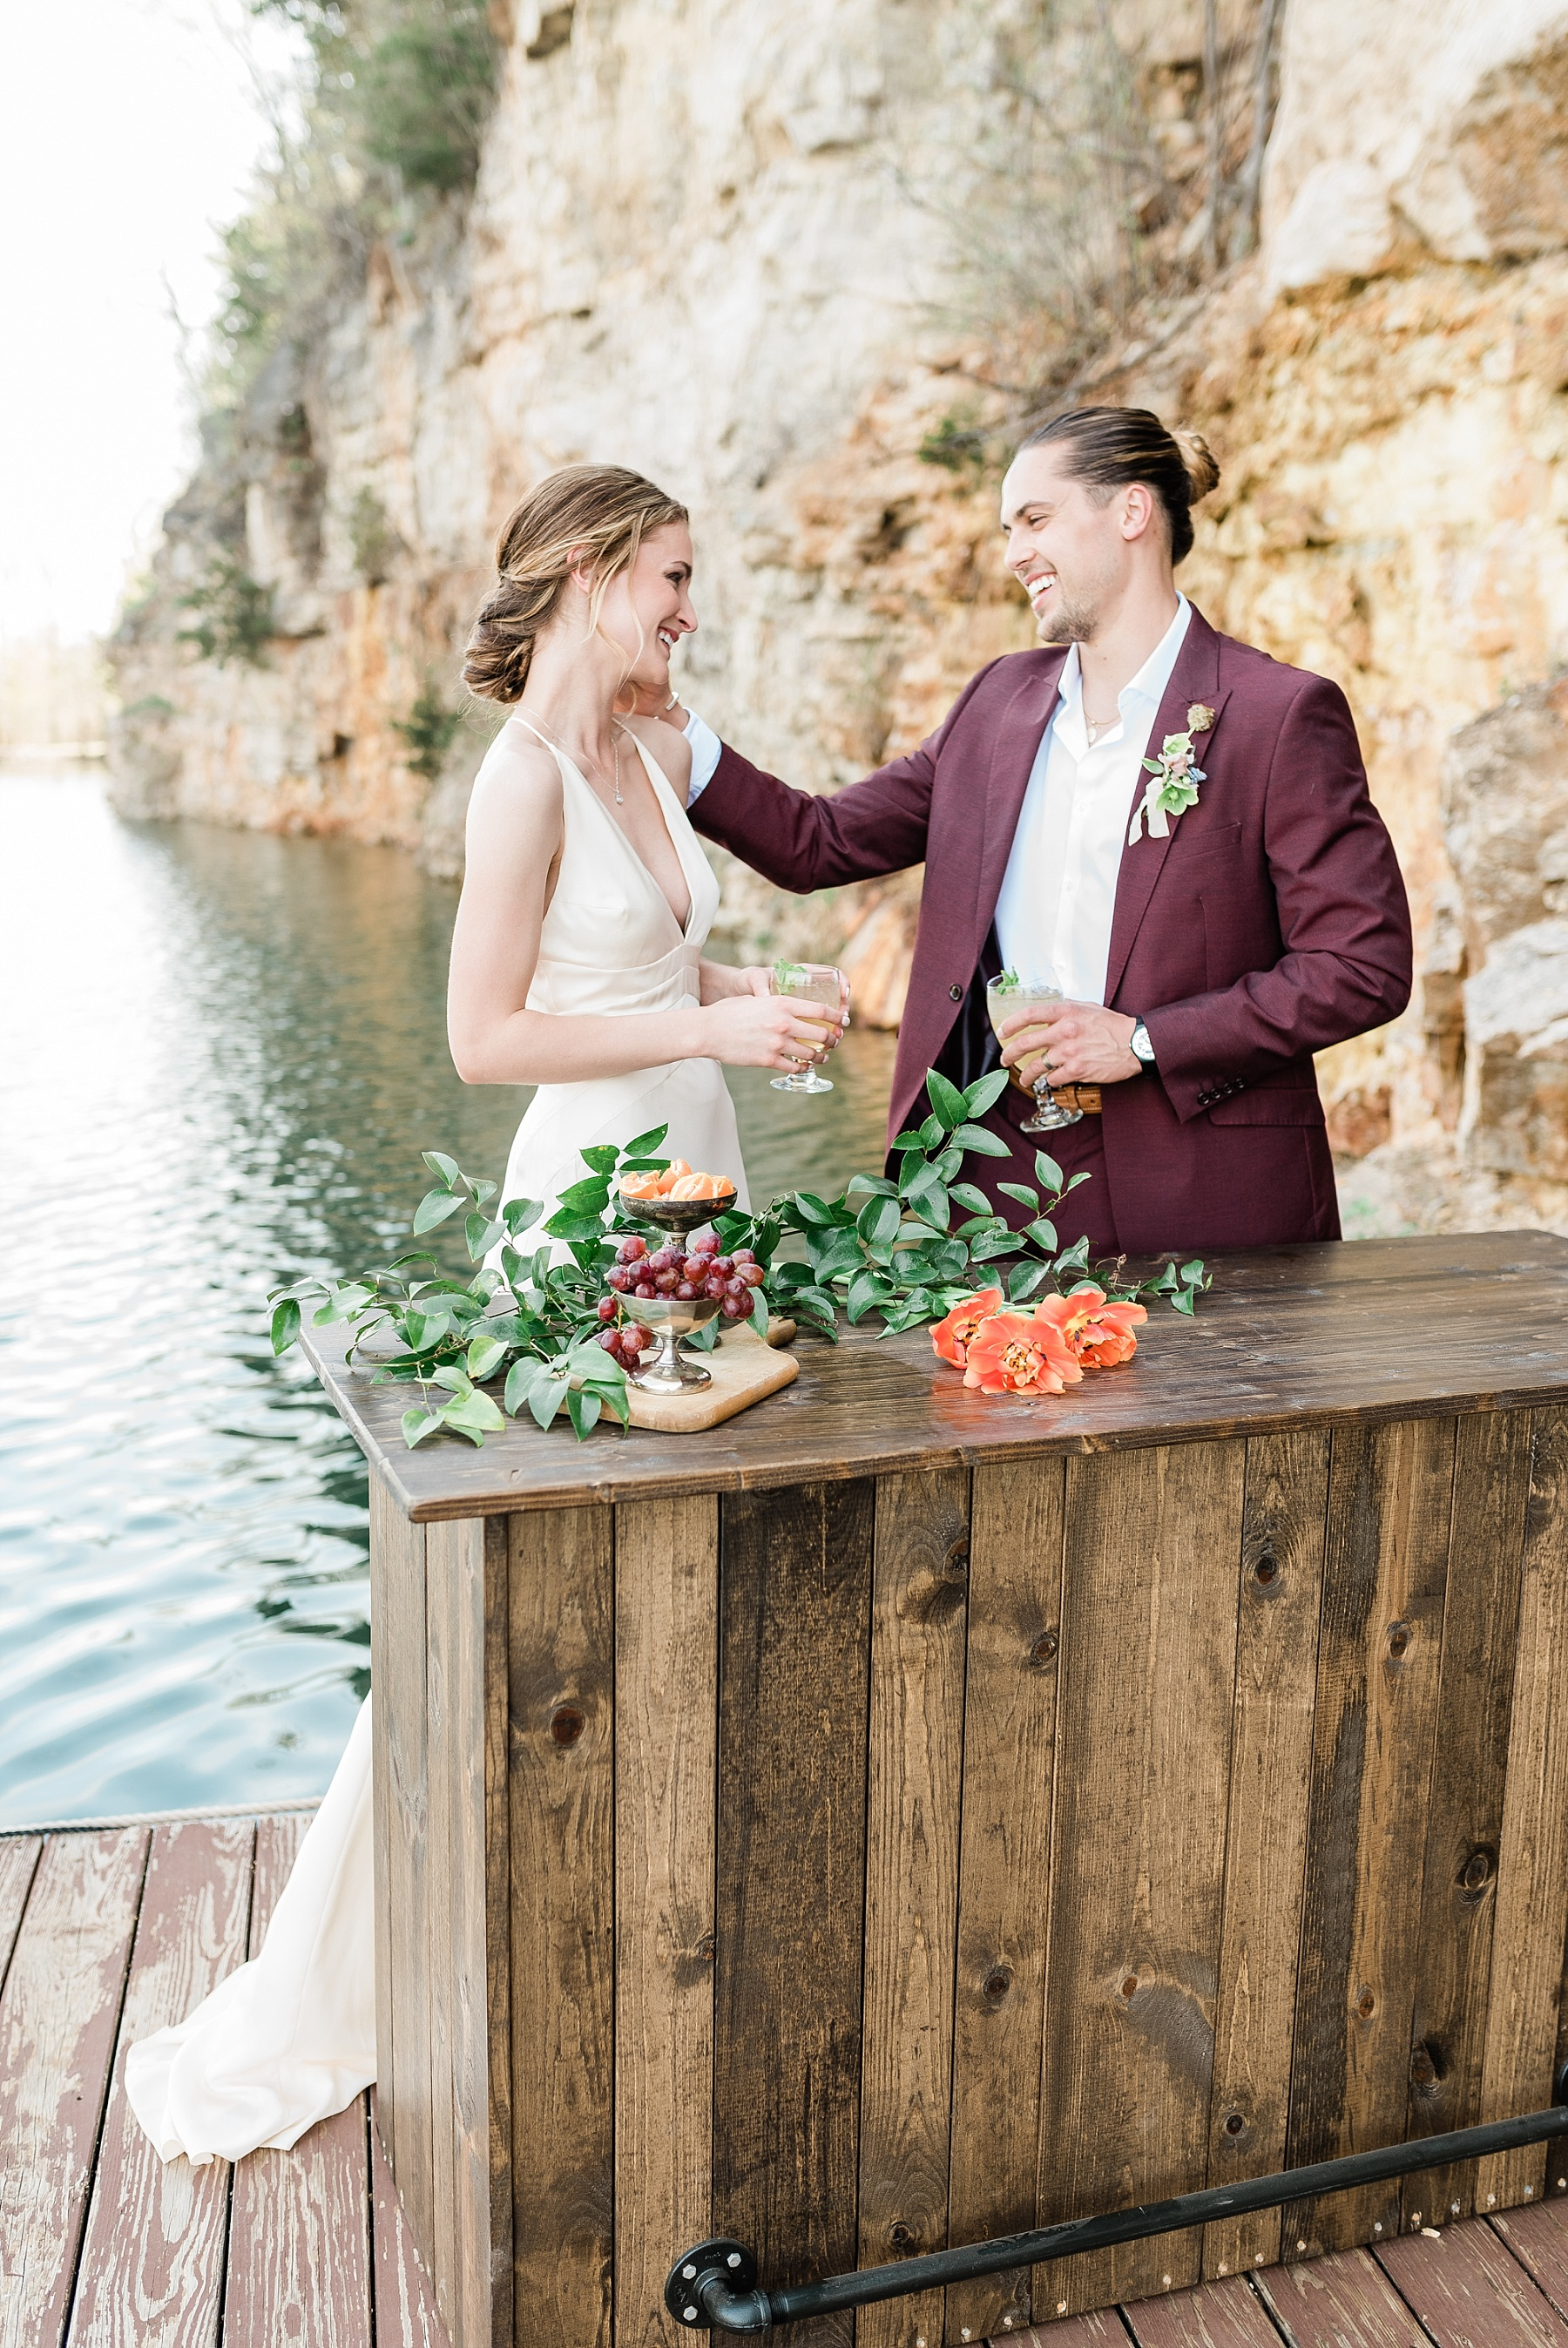 Intimate Spanish and French Inspired Destination Wedding with Lakeside Dinner Party at Dusk at Wildcliff by Kelsi Kliethermes Photography Best Missouri and Maui Wedding Photographer_0060.jpg